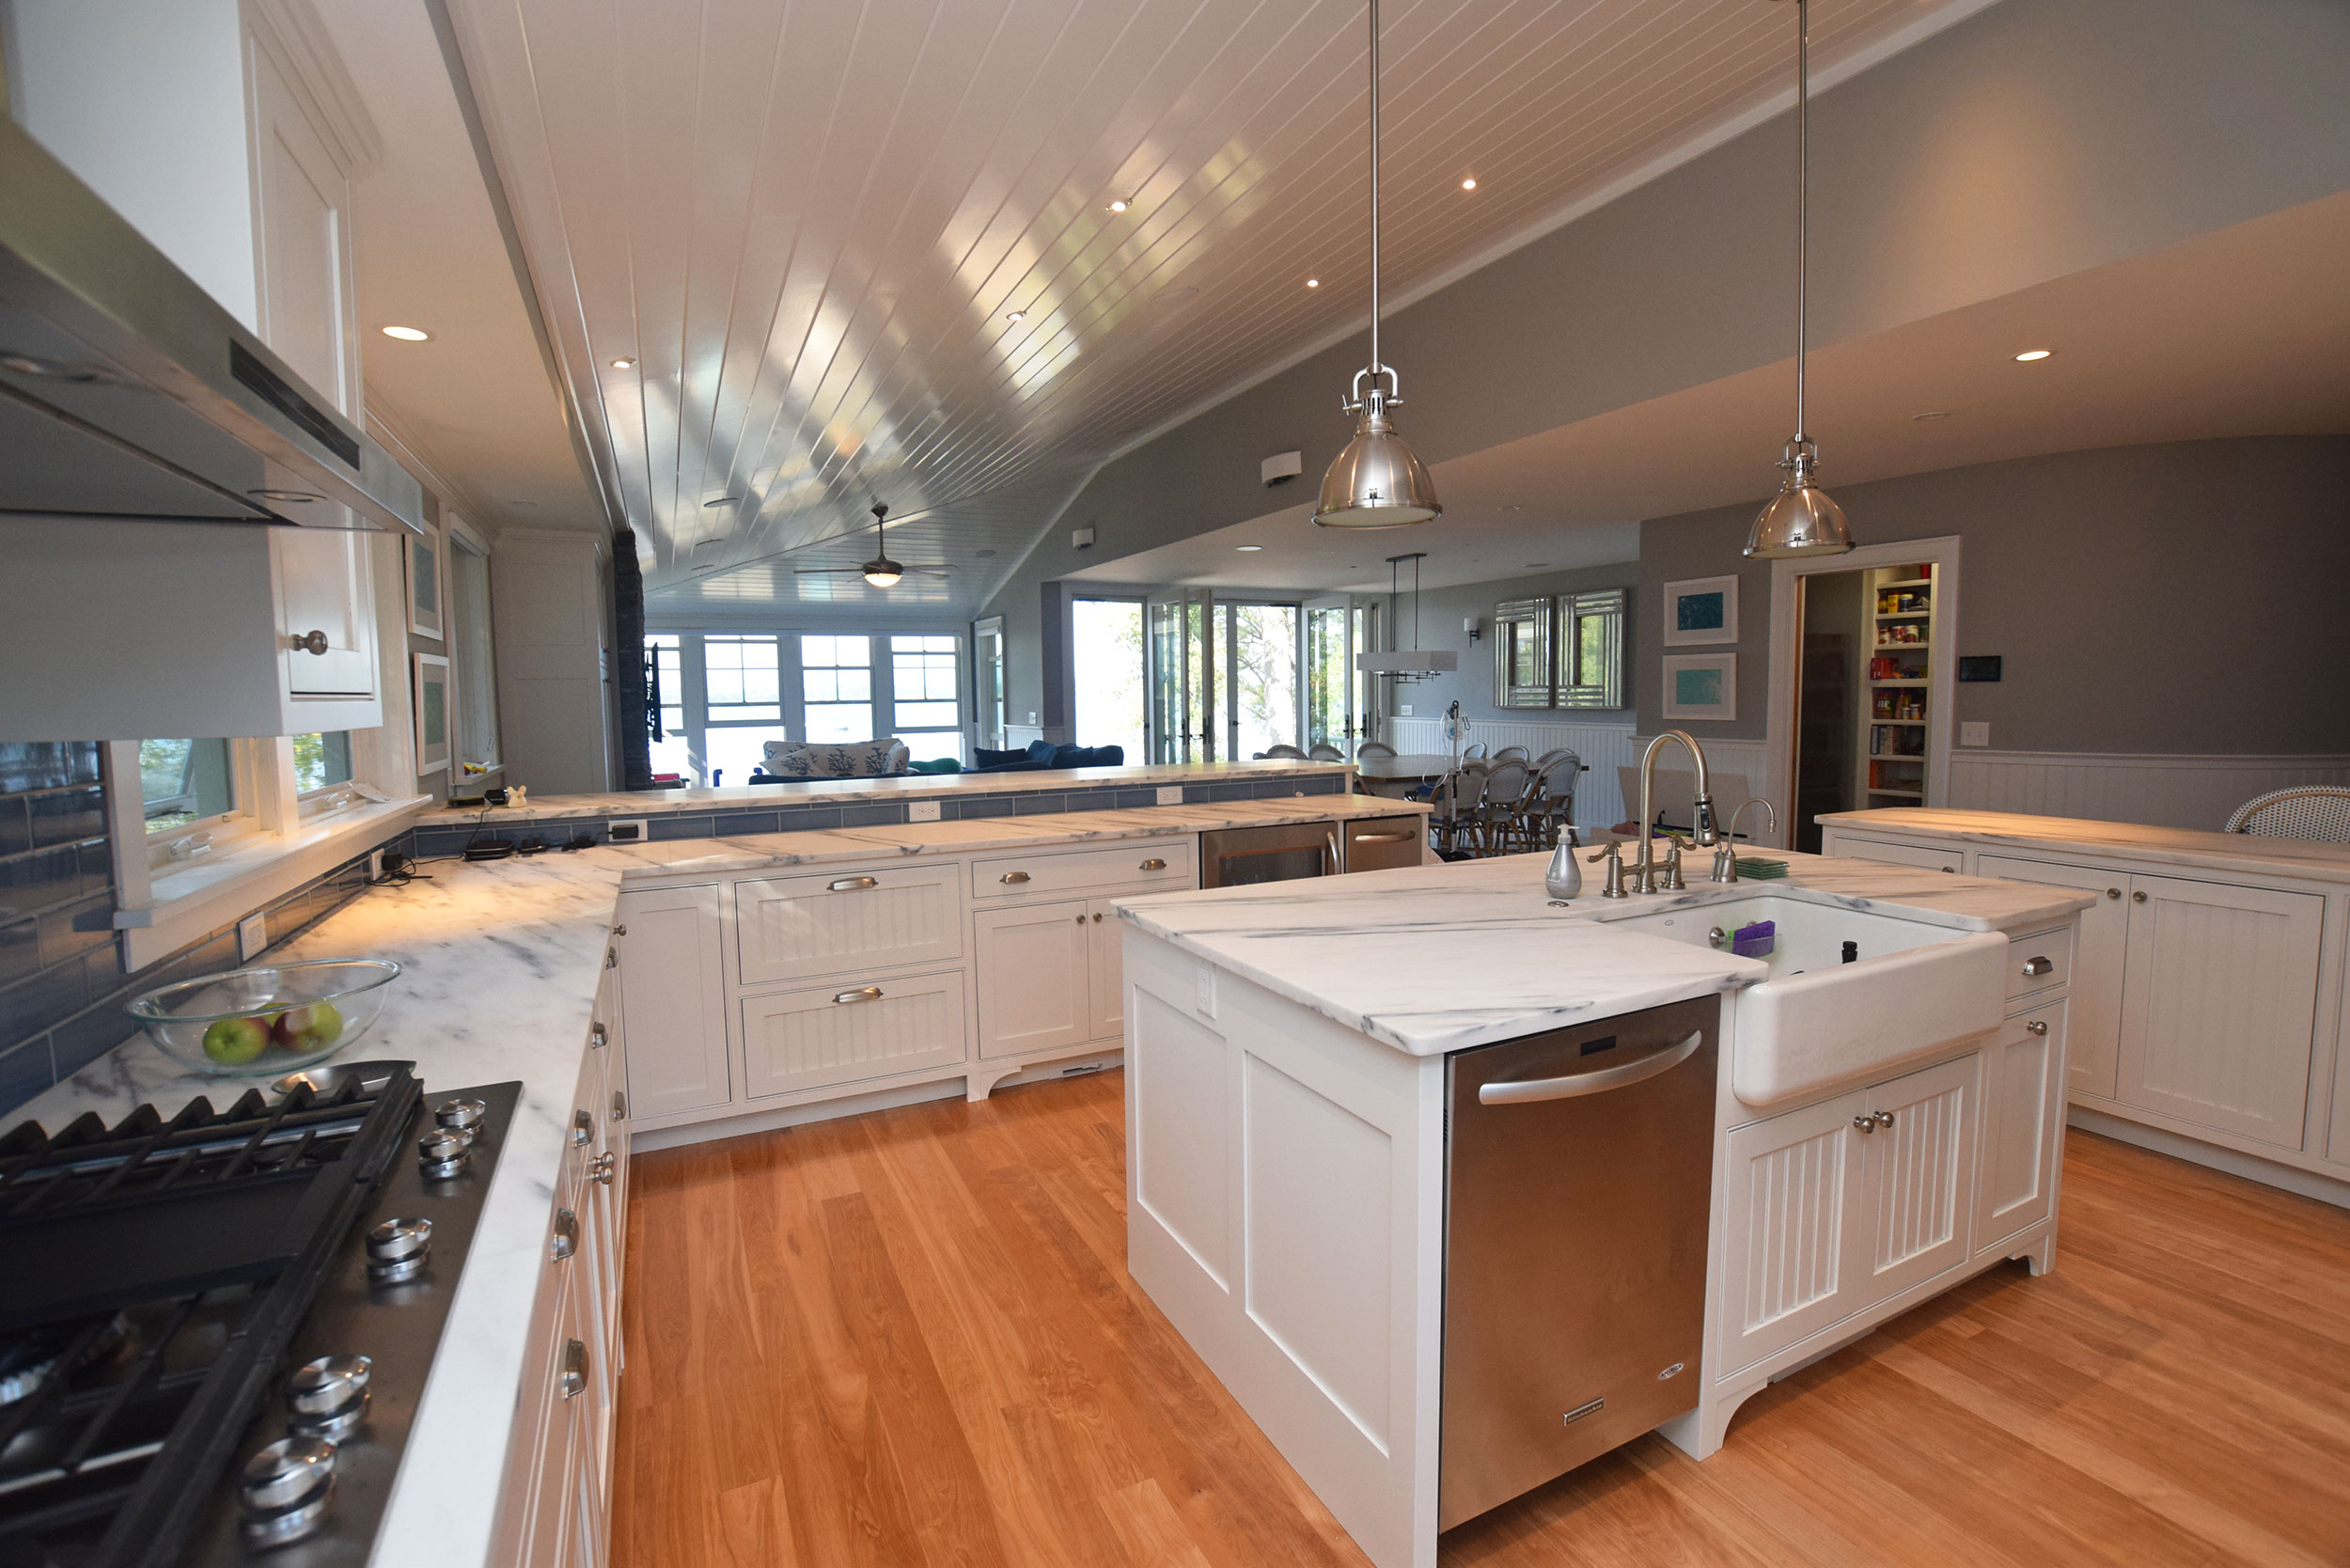 Lakehouse-kitchen-DSC_0031.jpg